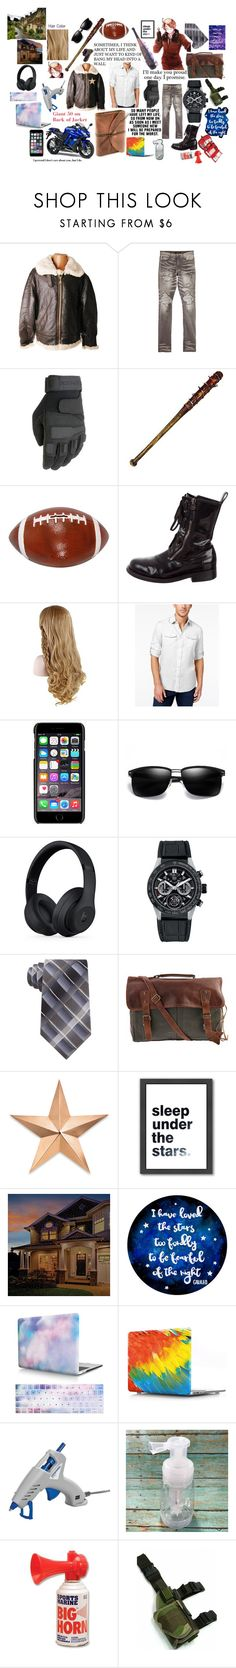 """Alfred F.Jones: Co-Personification of America - Everyday"" by flyingunikittys-poopattack on Polyvore featuring Melissa, Ricardo B.H., AMIRI, Barbed, Giuseppe Zanotti, Kawasaki, Michael Kors, Dolce&Gabbana, Beats by Dr. Dre and TAG Heuer"